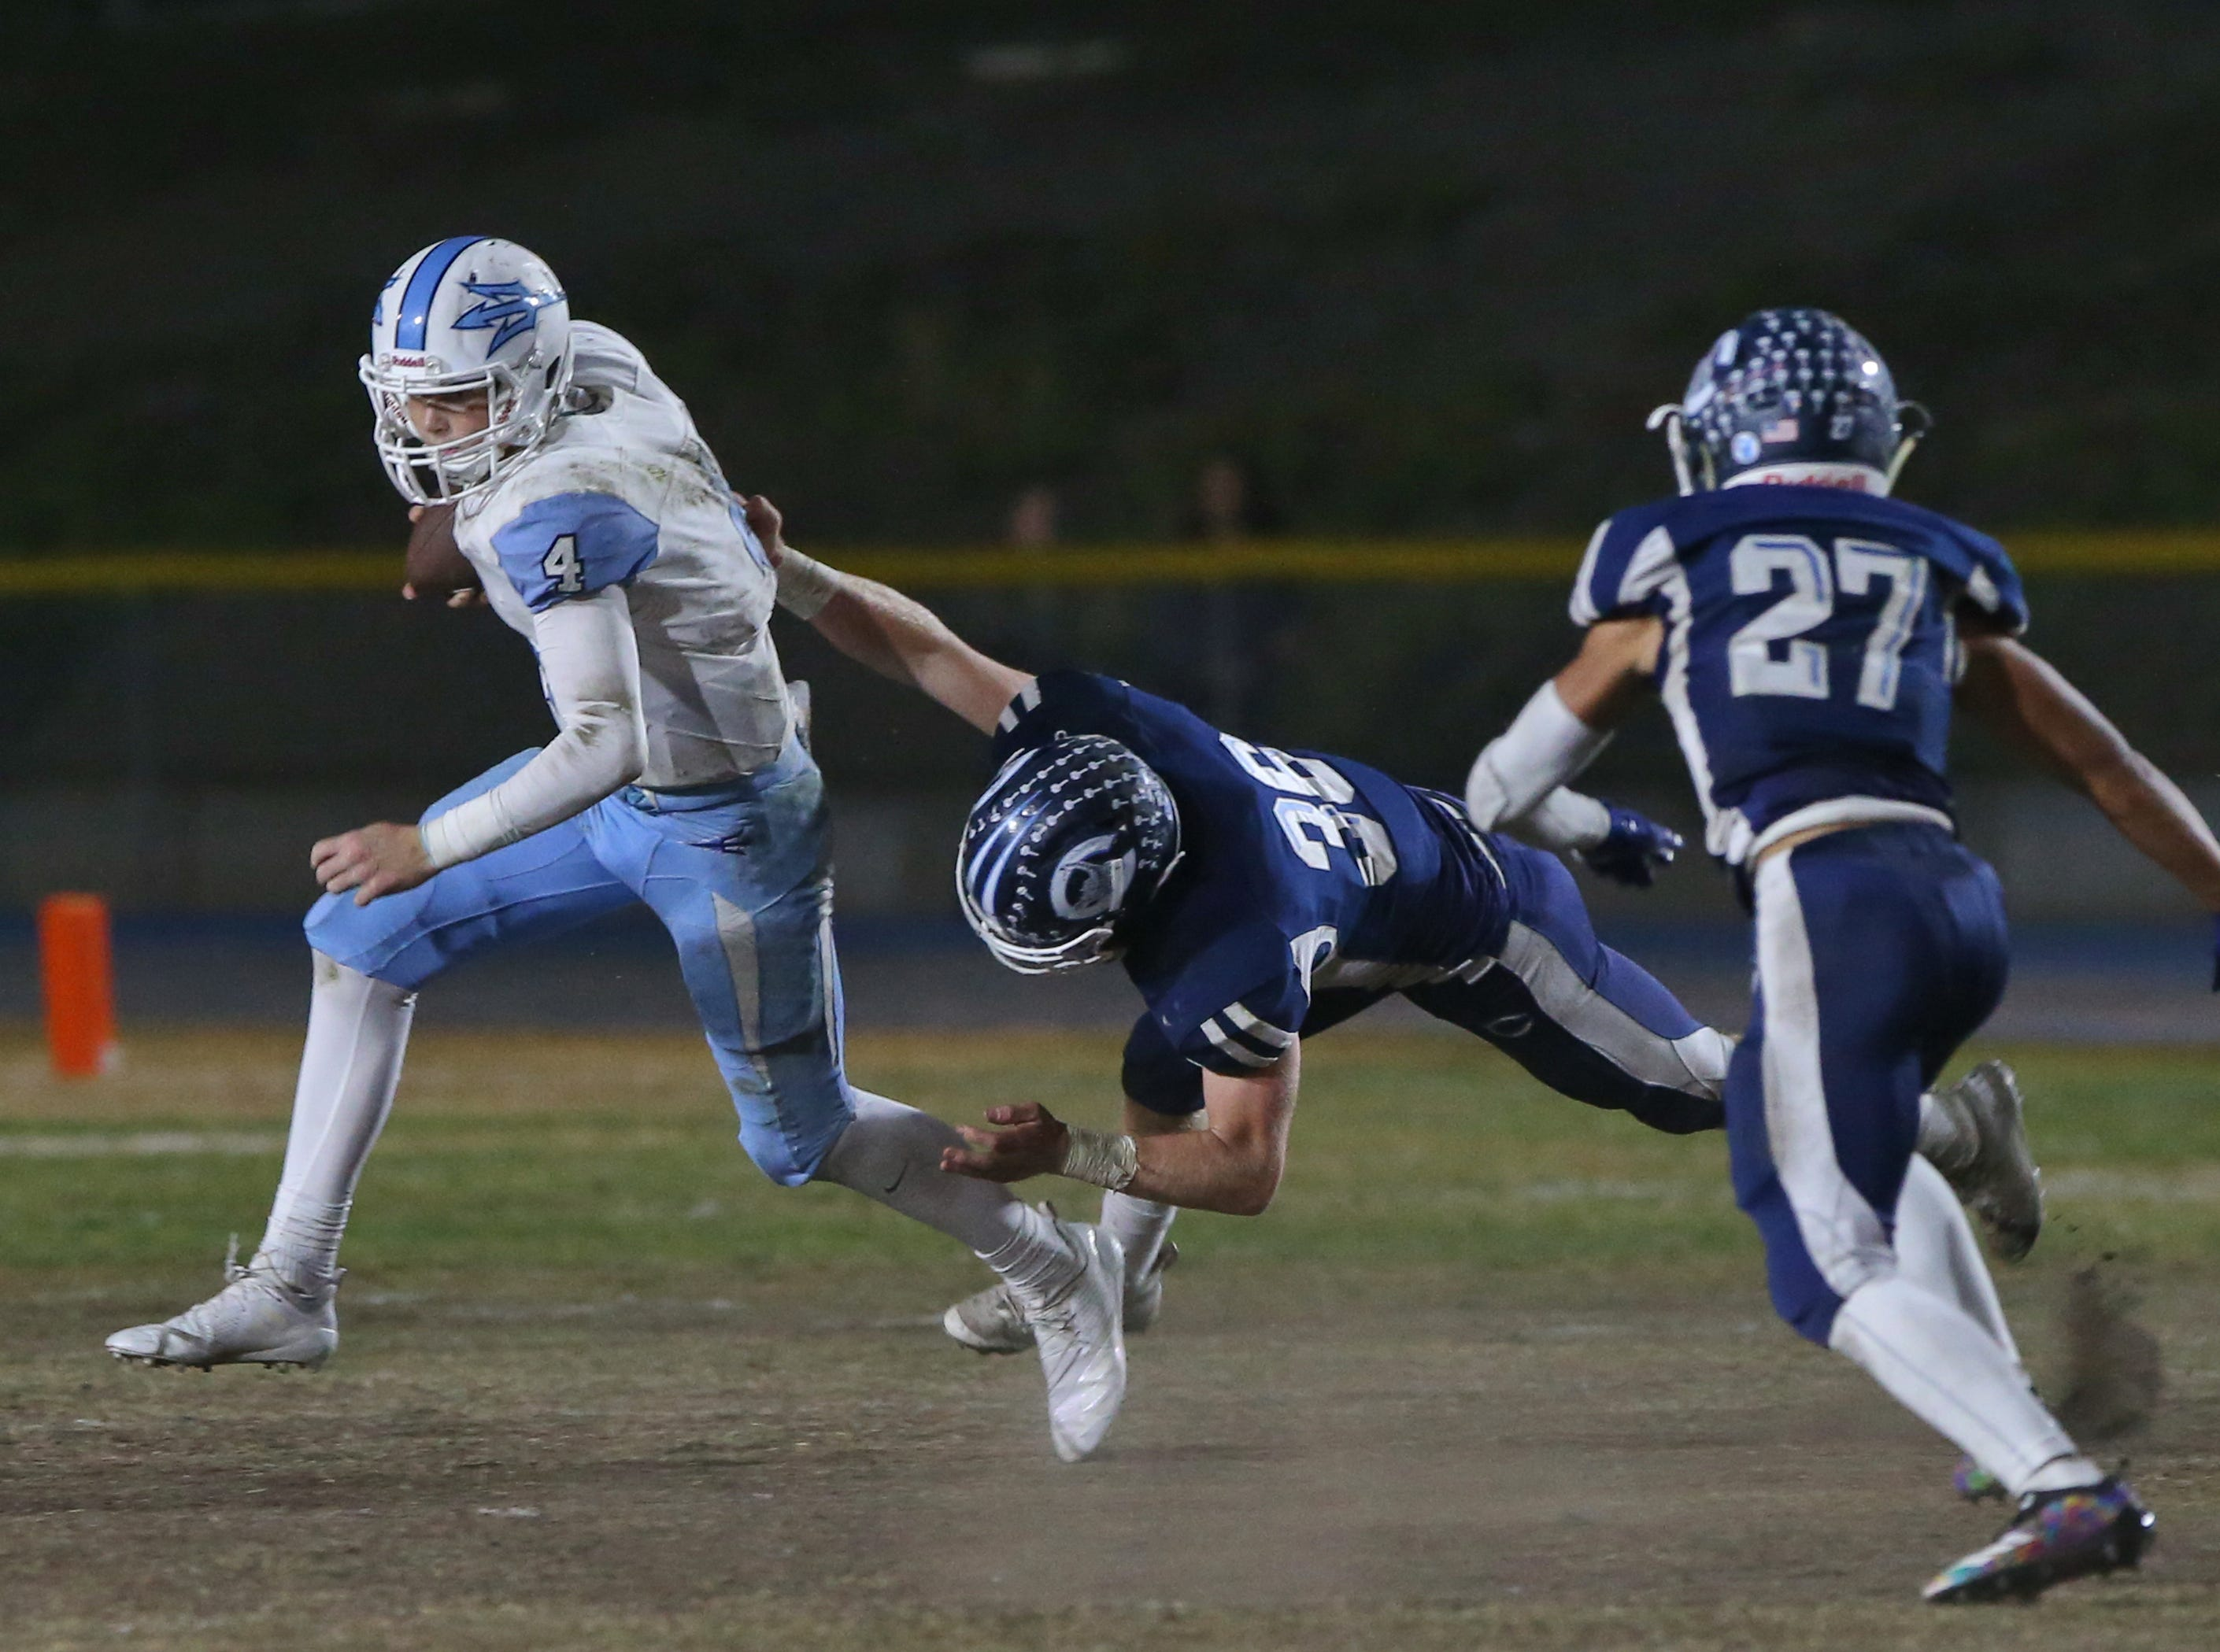 Camarillo High's Drew Carter tries to take down Corona del Mar quarterback Ethan Garbers during their CIF-SS Division 4 semifinal game on Friday.